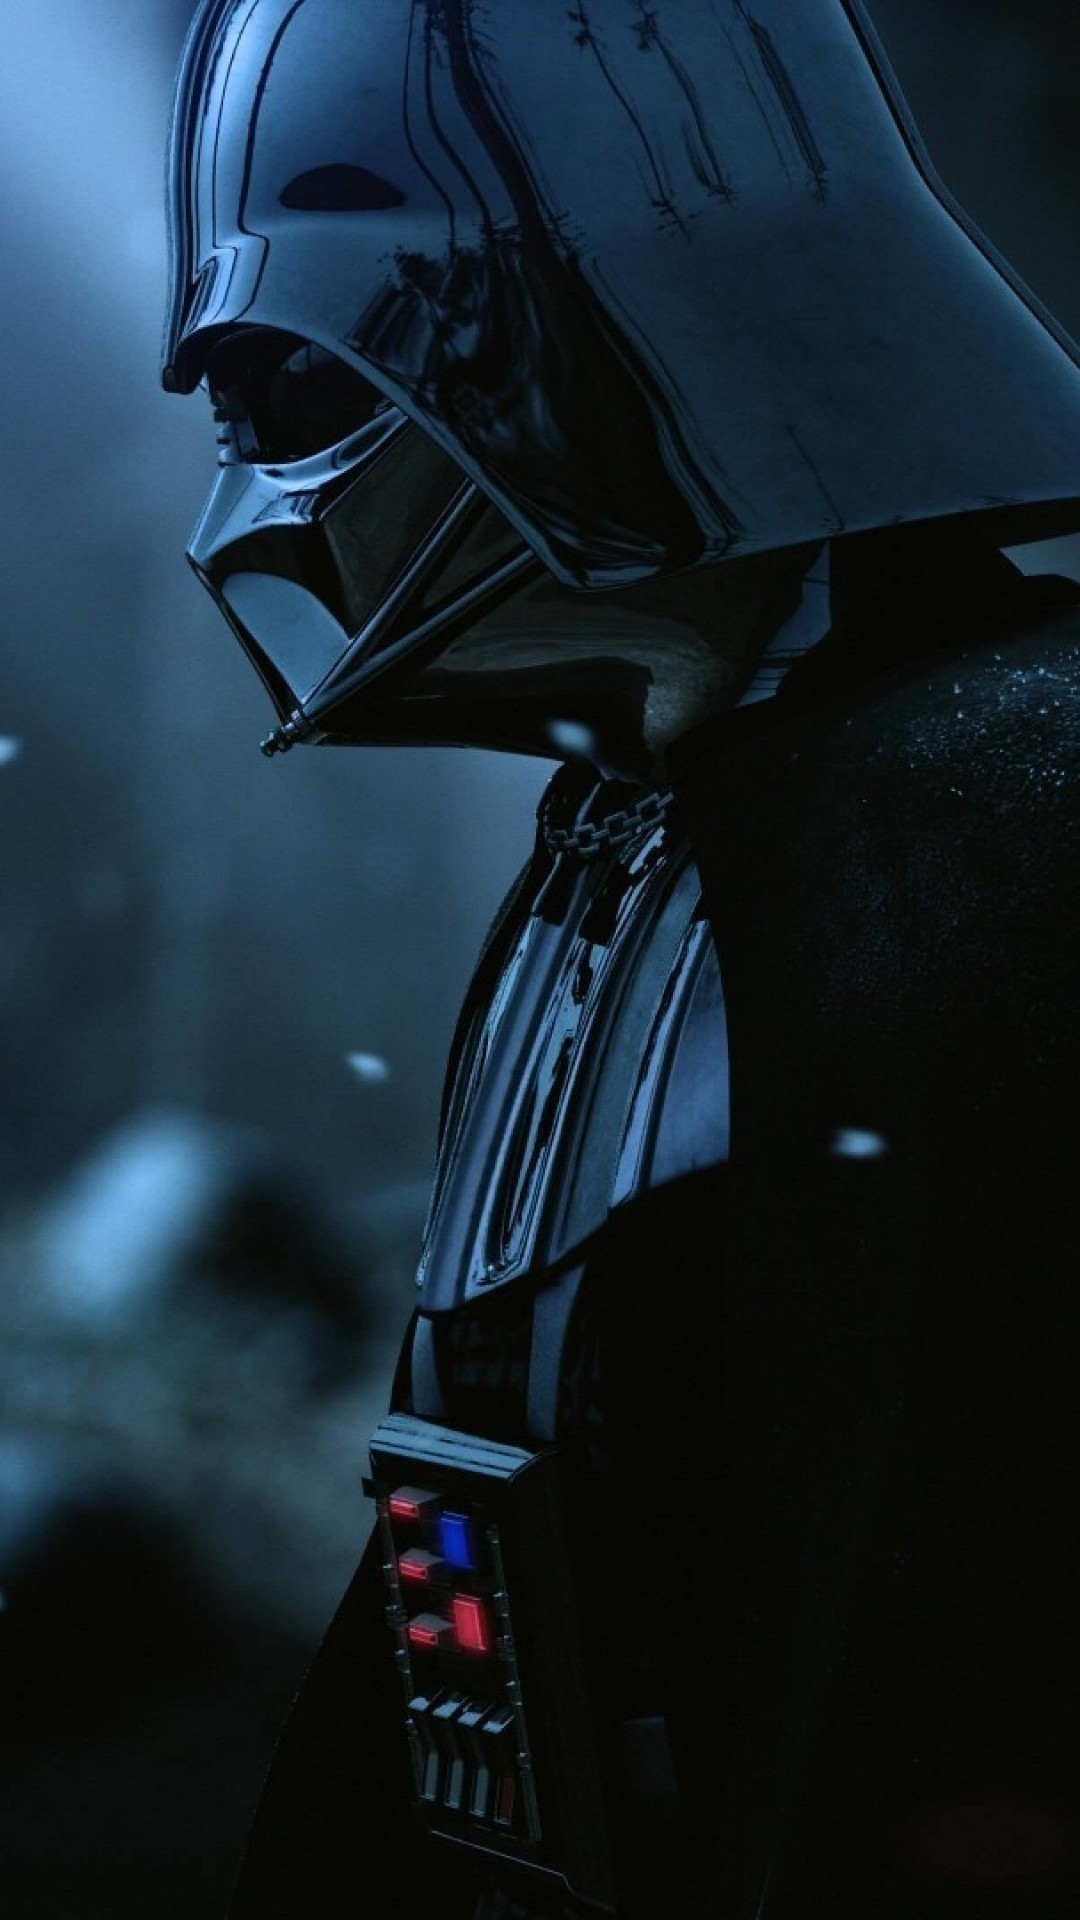 Darth Vader - The Force Unleashed 2 Wallpaper for Motorola Moto X